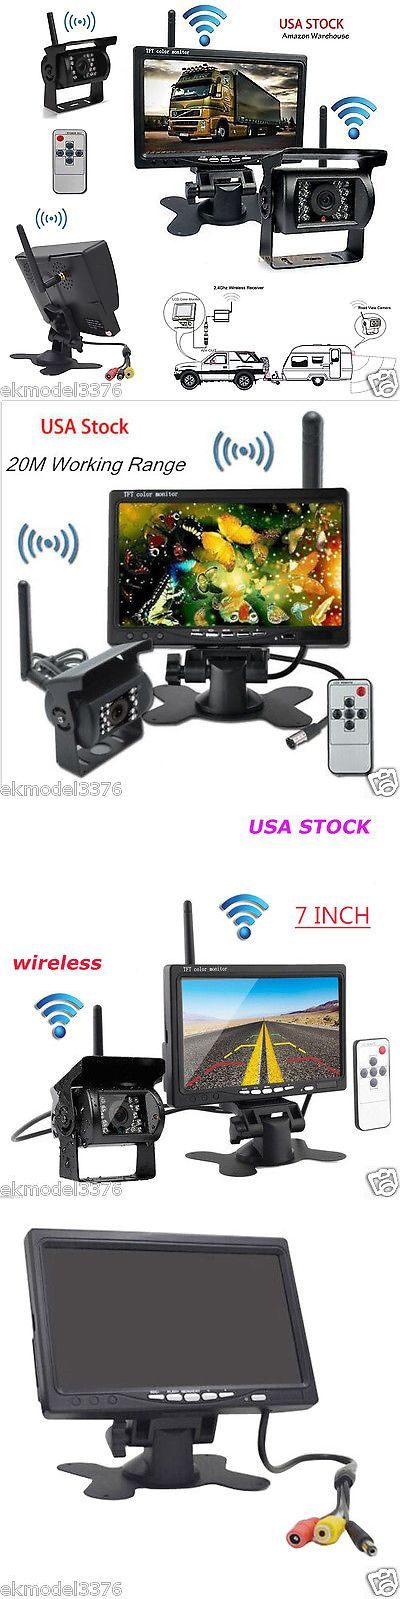 Rear View Monitors Cams and Kits: 7 Car Rear View Monitor + Wireless Backup Camera And Antenna For Truck Trailer -> BUY IT NOW ONLY: $68.98 on eBay!